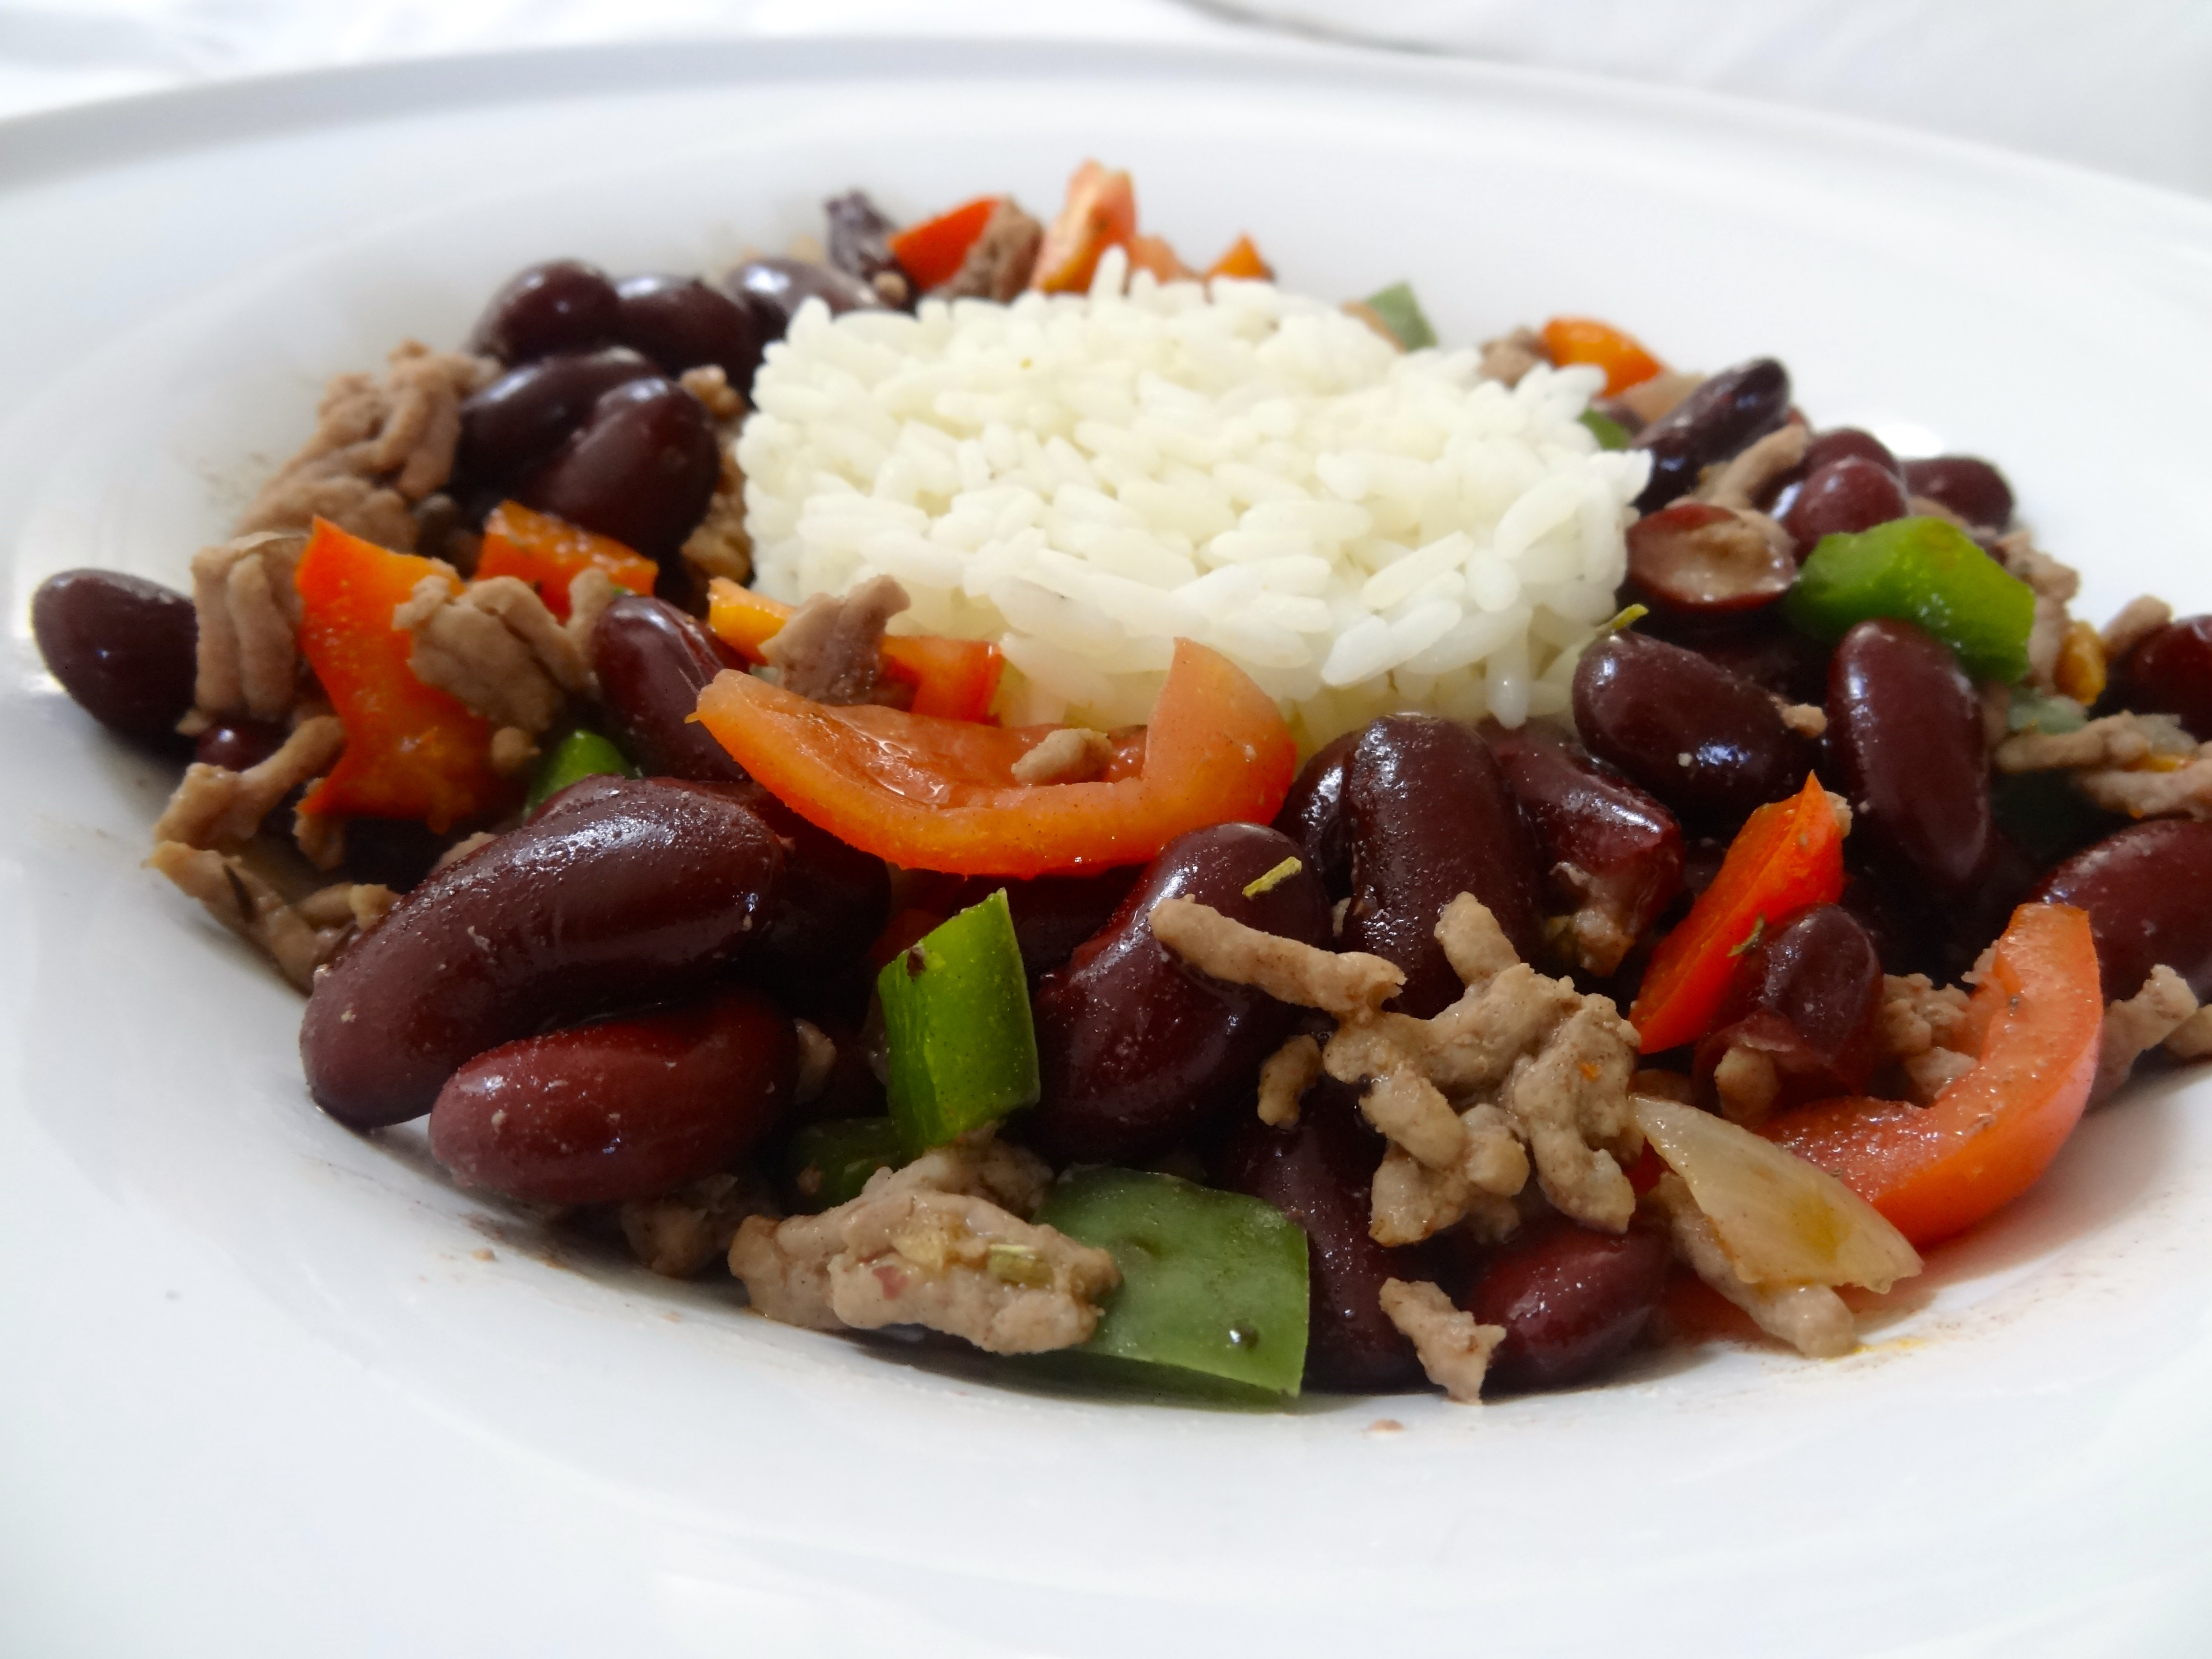 Recette de chili con carne weight watchers dine move blog sport cuisine healthy - Blog cuisine weight watchers ...